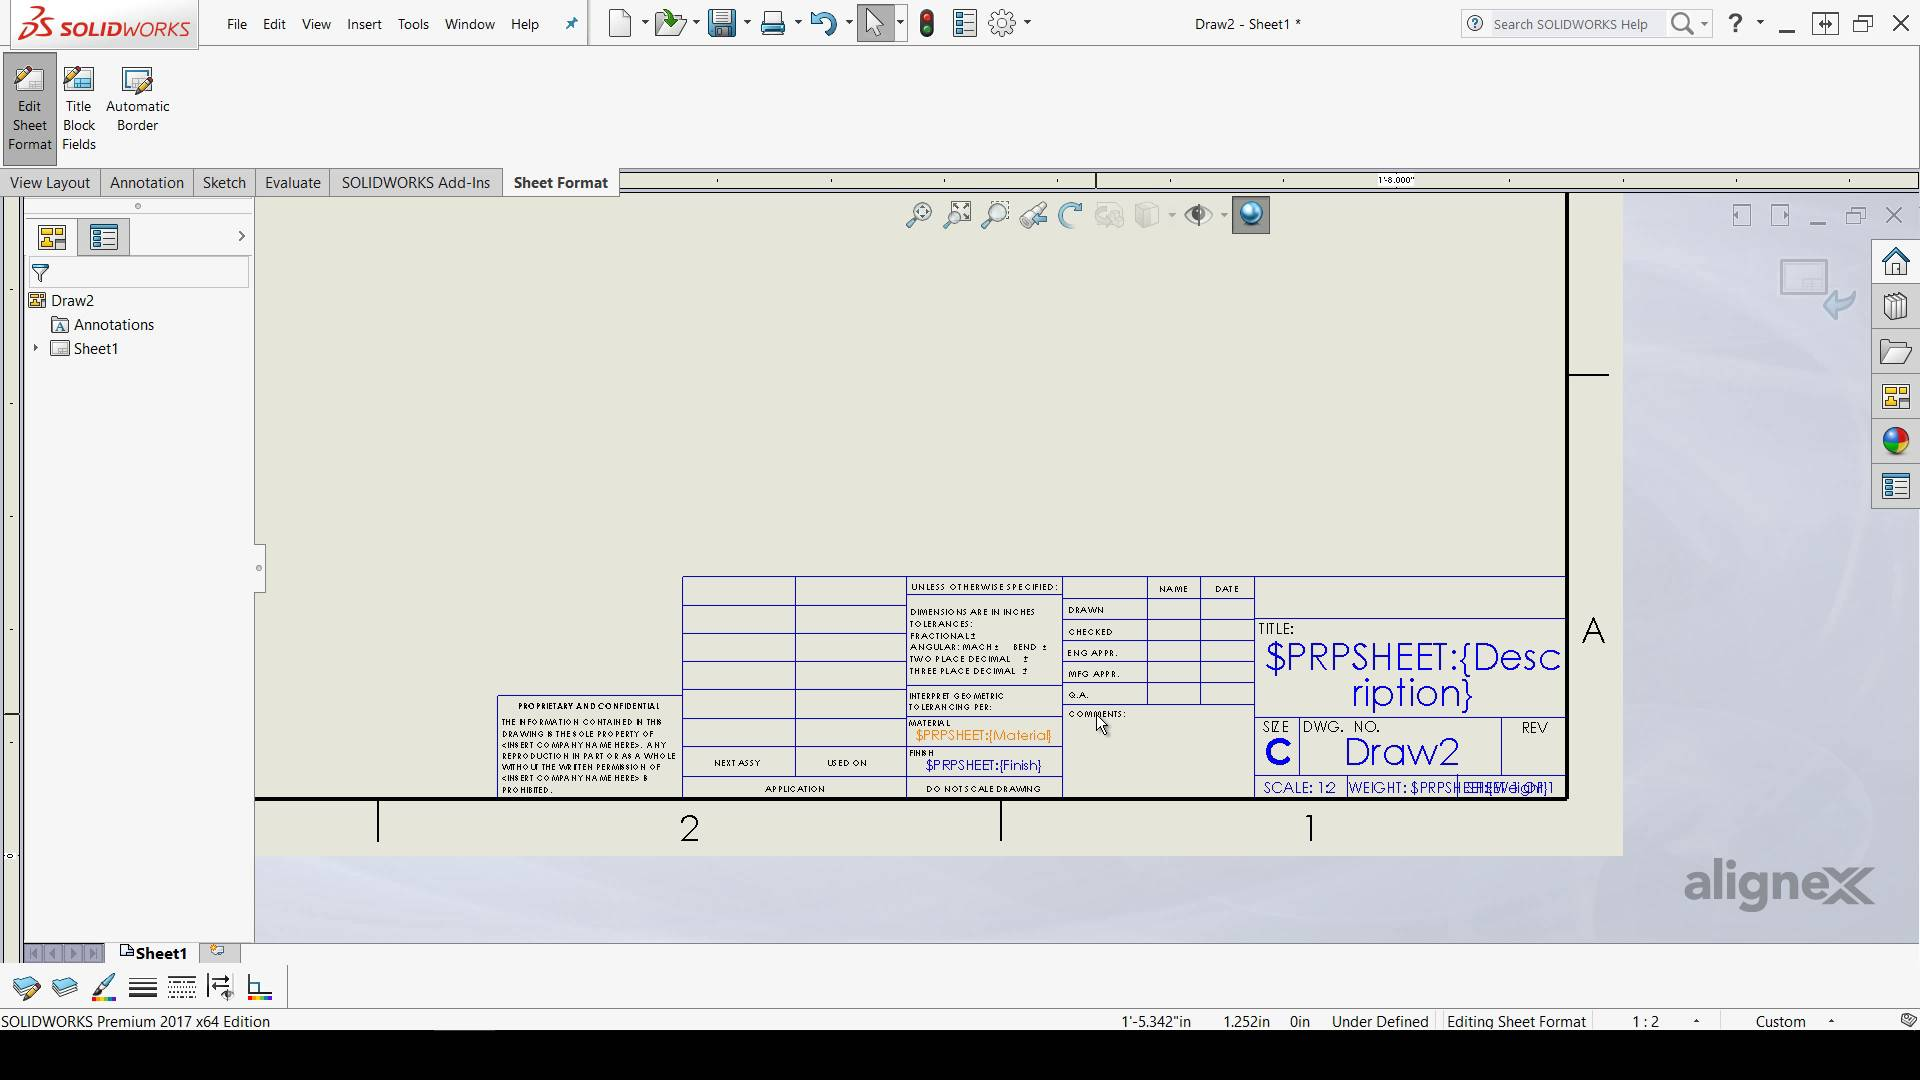 Alignex blog for Solidworks drawing template tutorial